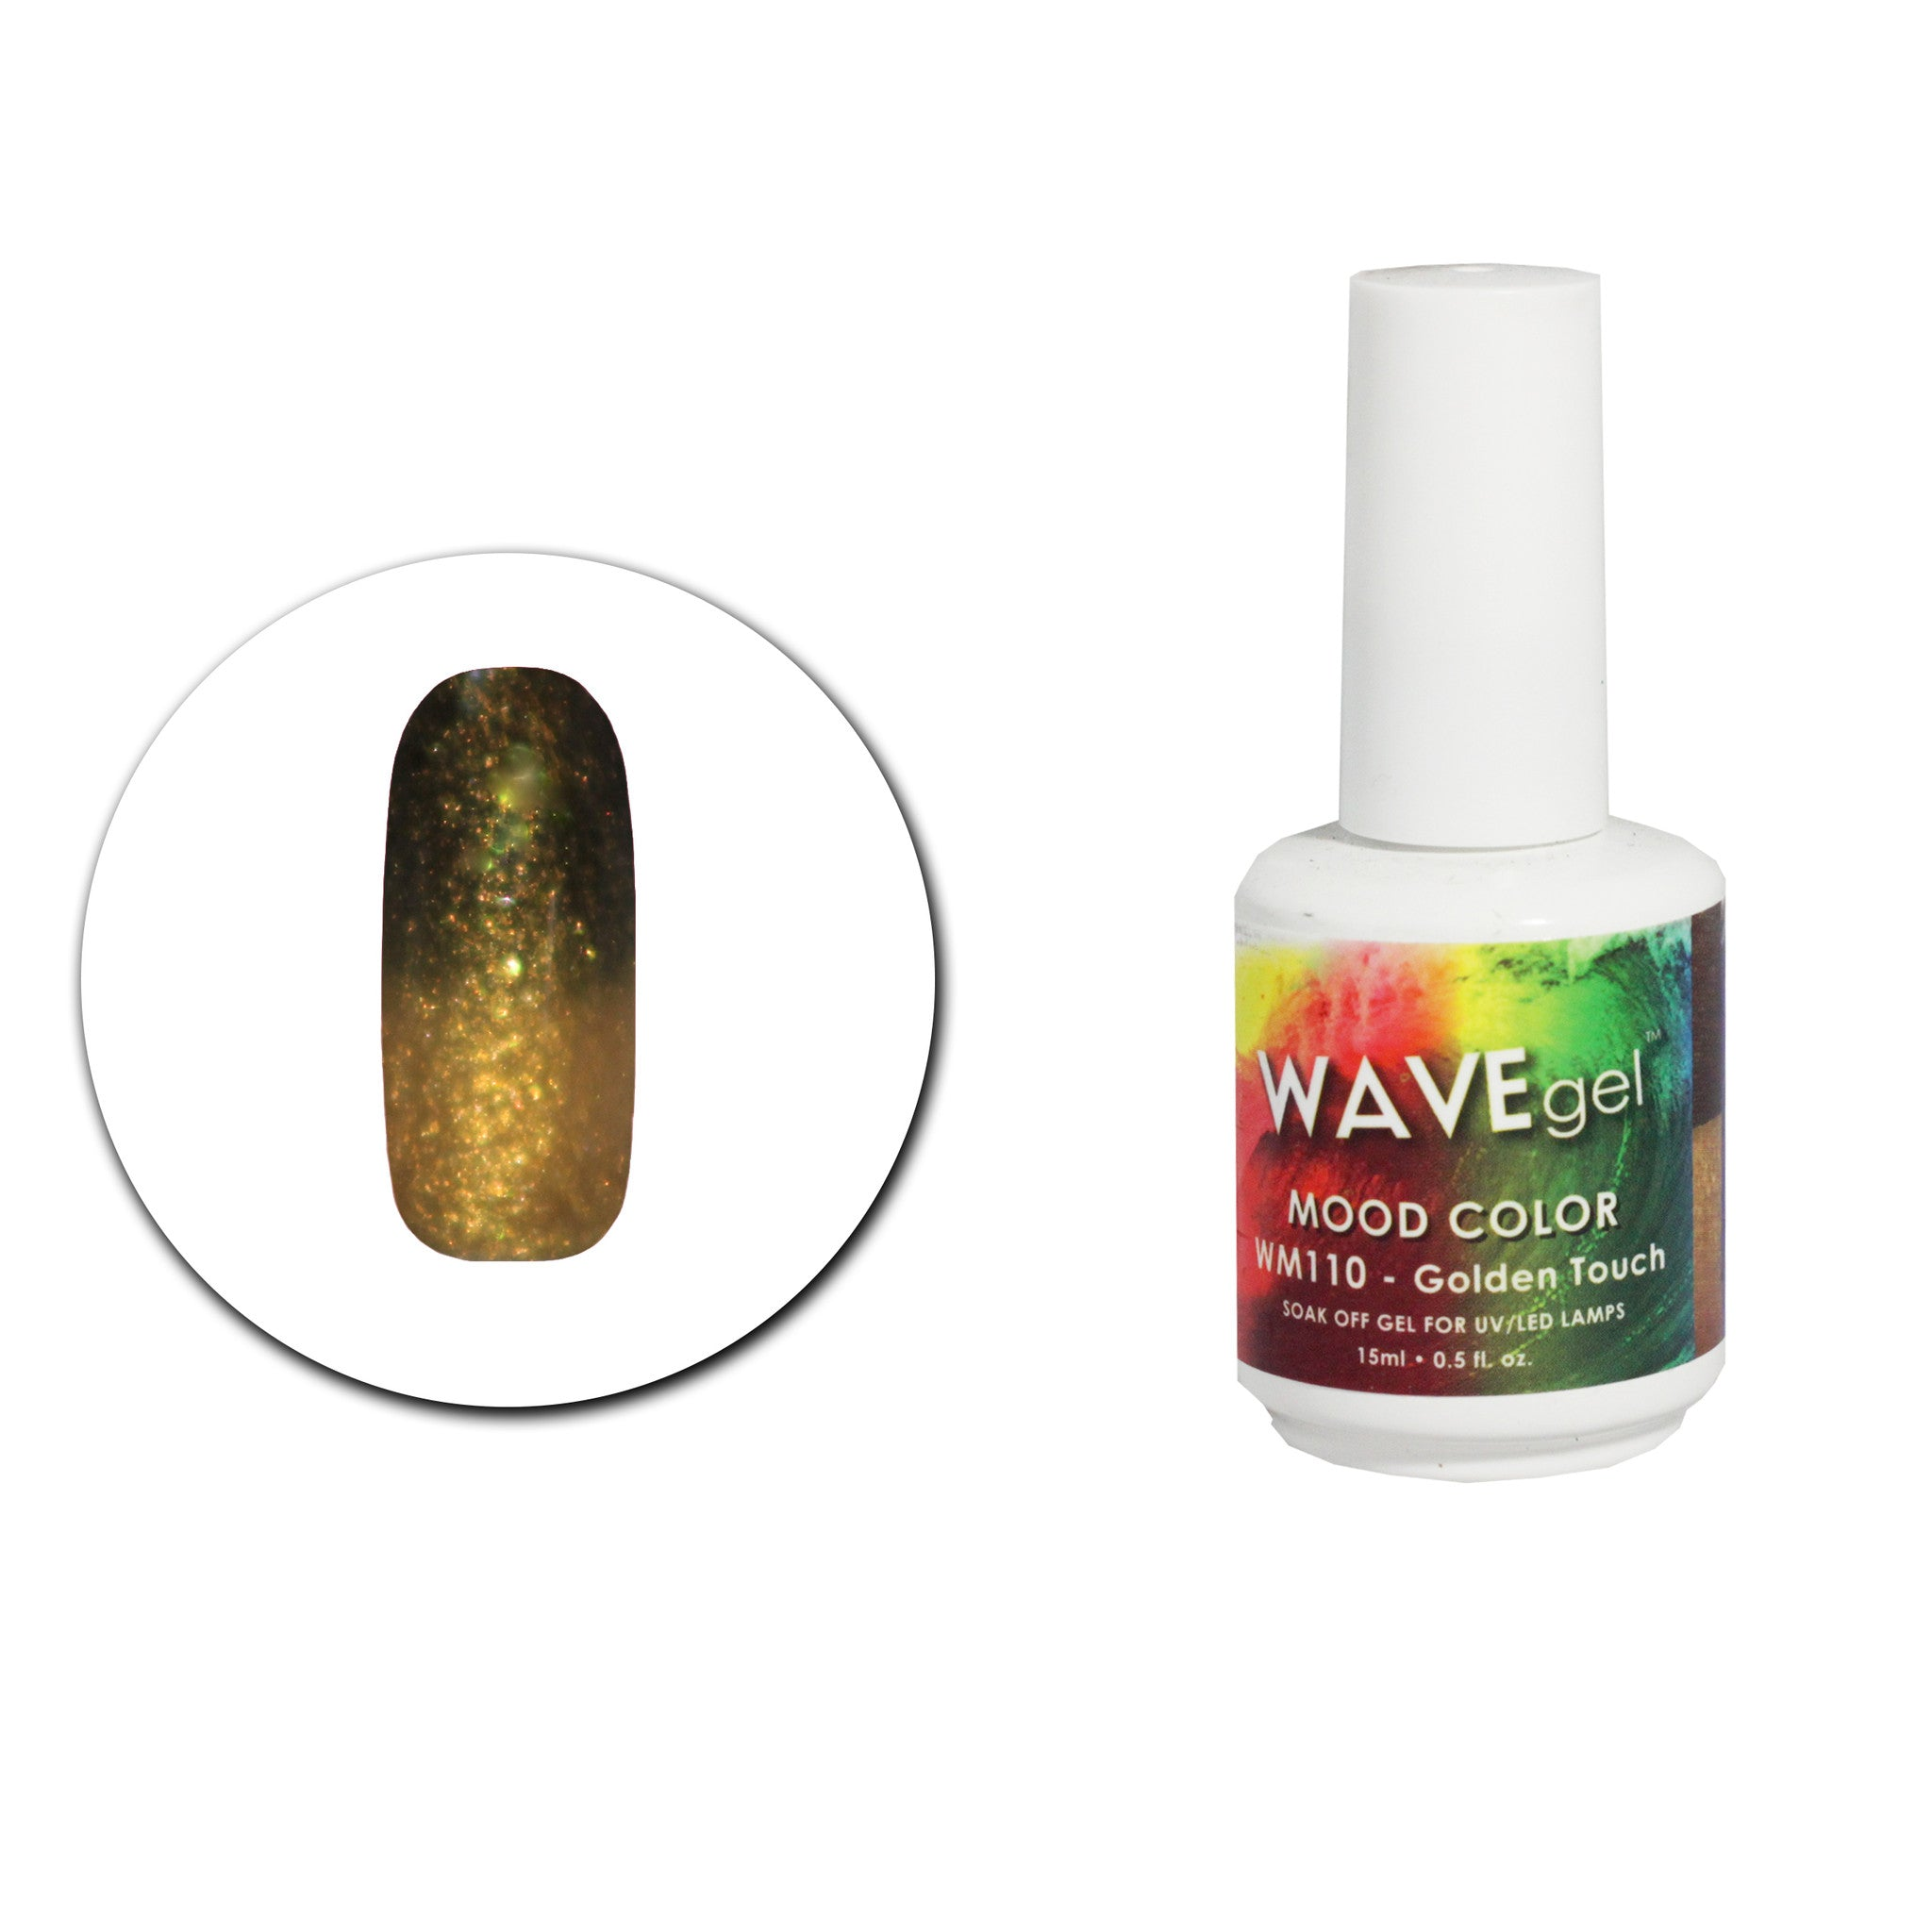 Wave Gel Mood Change Wm110 Golden Touch Rush Hour Beauty Supply